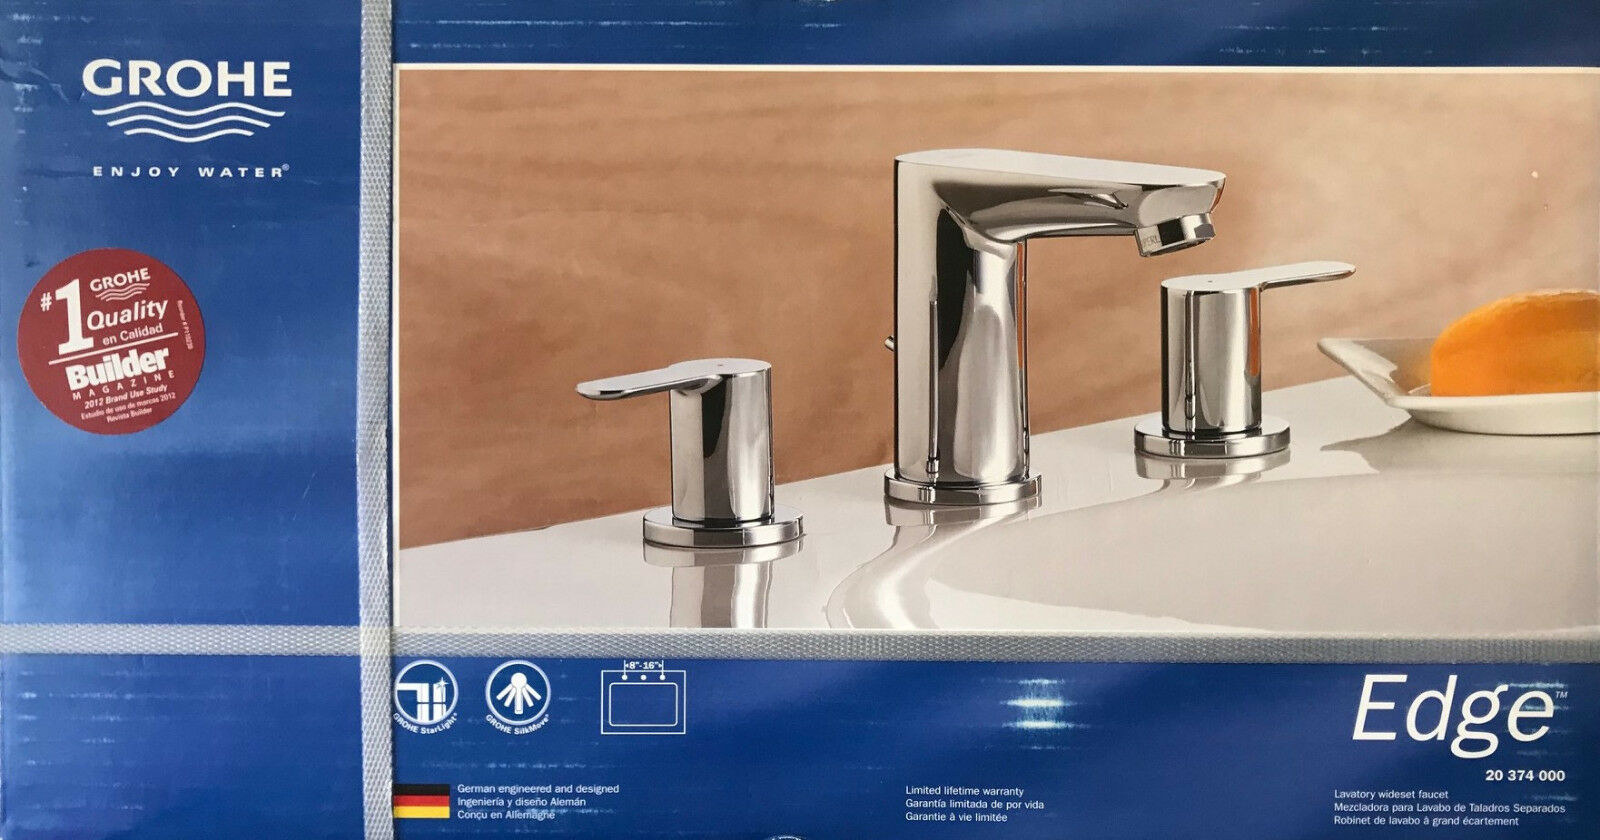 GROHE Edge Lavatory Wideset Faucet Chrome 20374000 | eBay